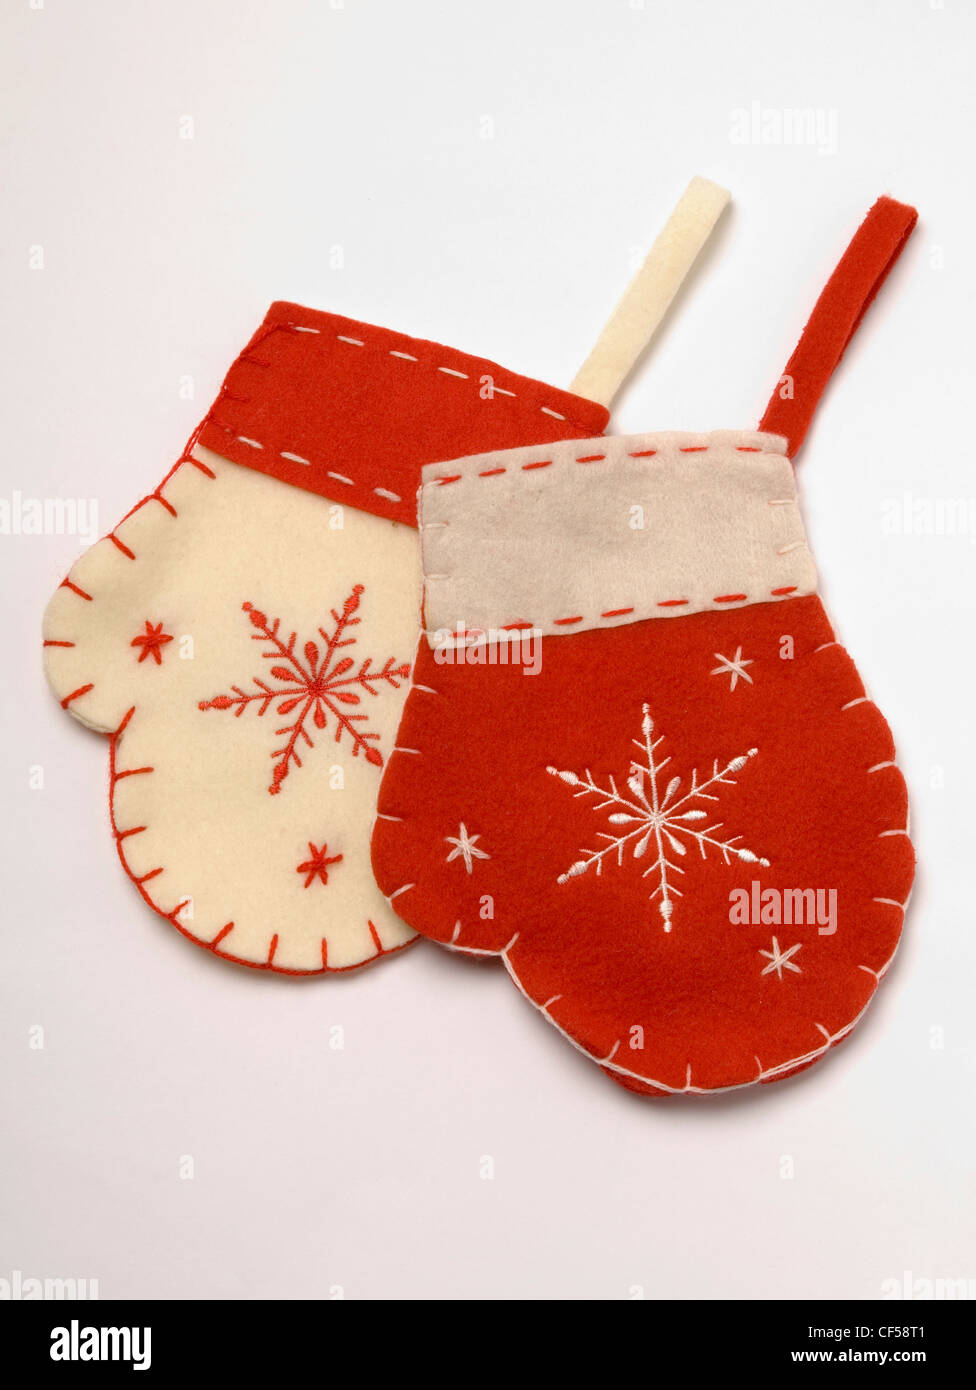 Mitten christmas decorations - Stock Photo Two Red And Cream Felt Mitten Shaped Hanging Christmas Tree Decorations Contrast Stitching And Embroidered Snowflake Pattern